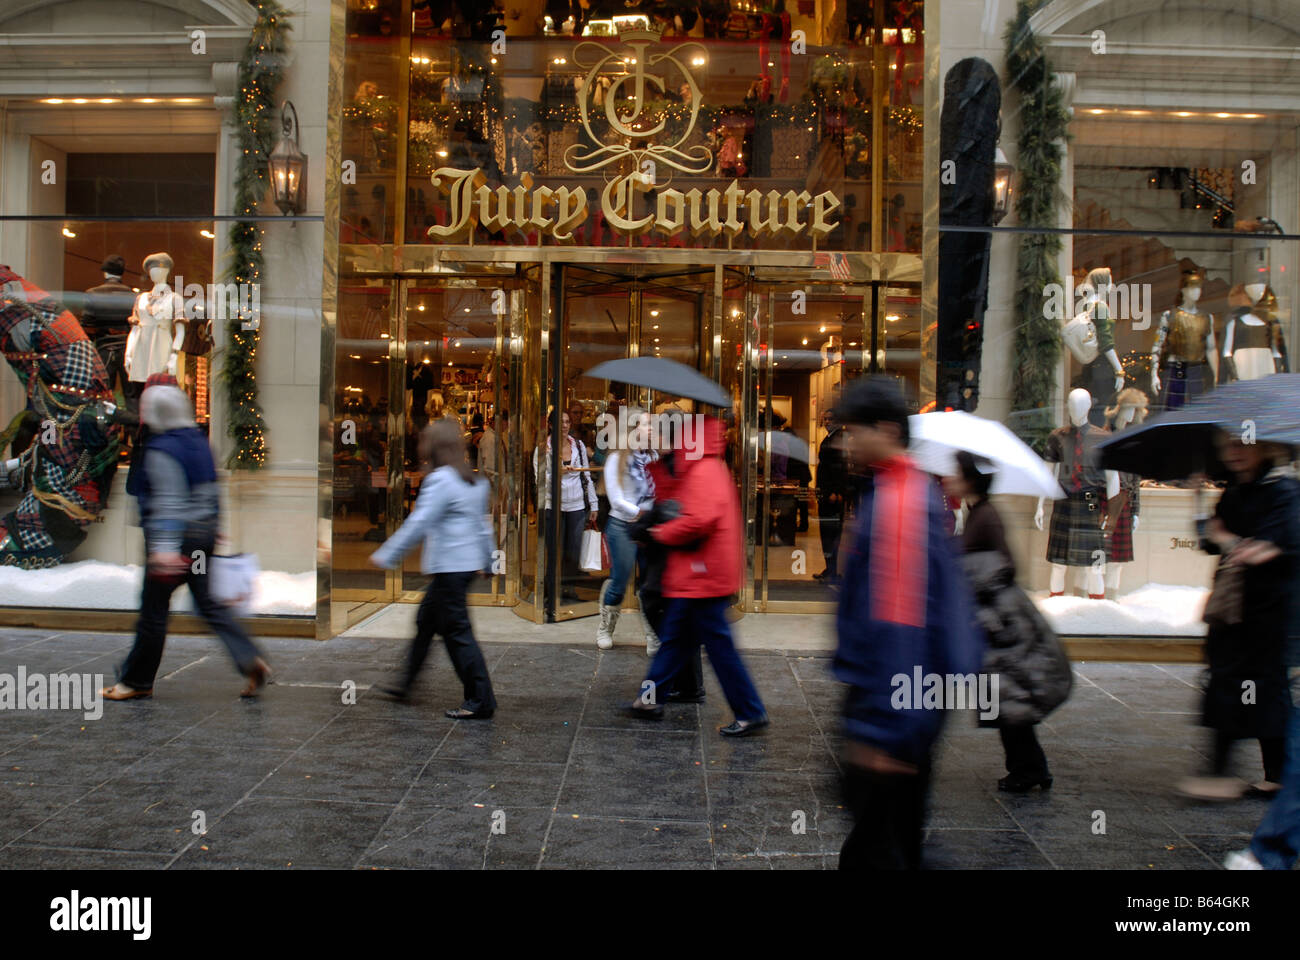 Shoppers outside Juicy Couture on Fifth Avenue in New York - Stock Image